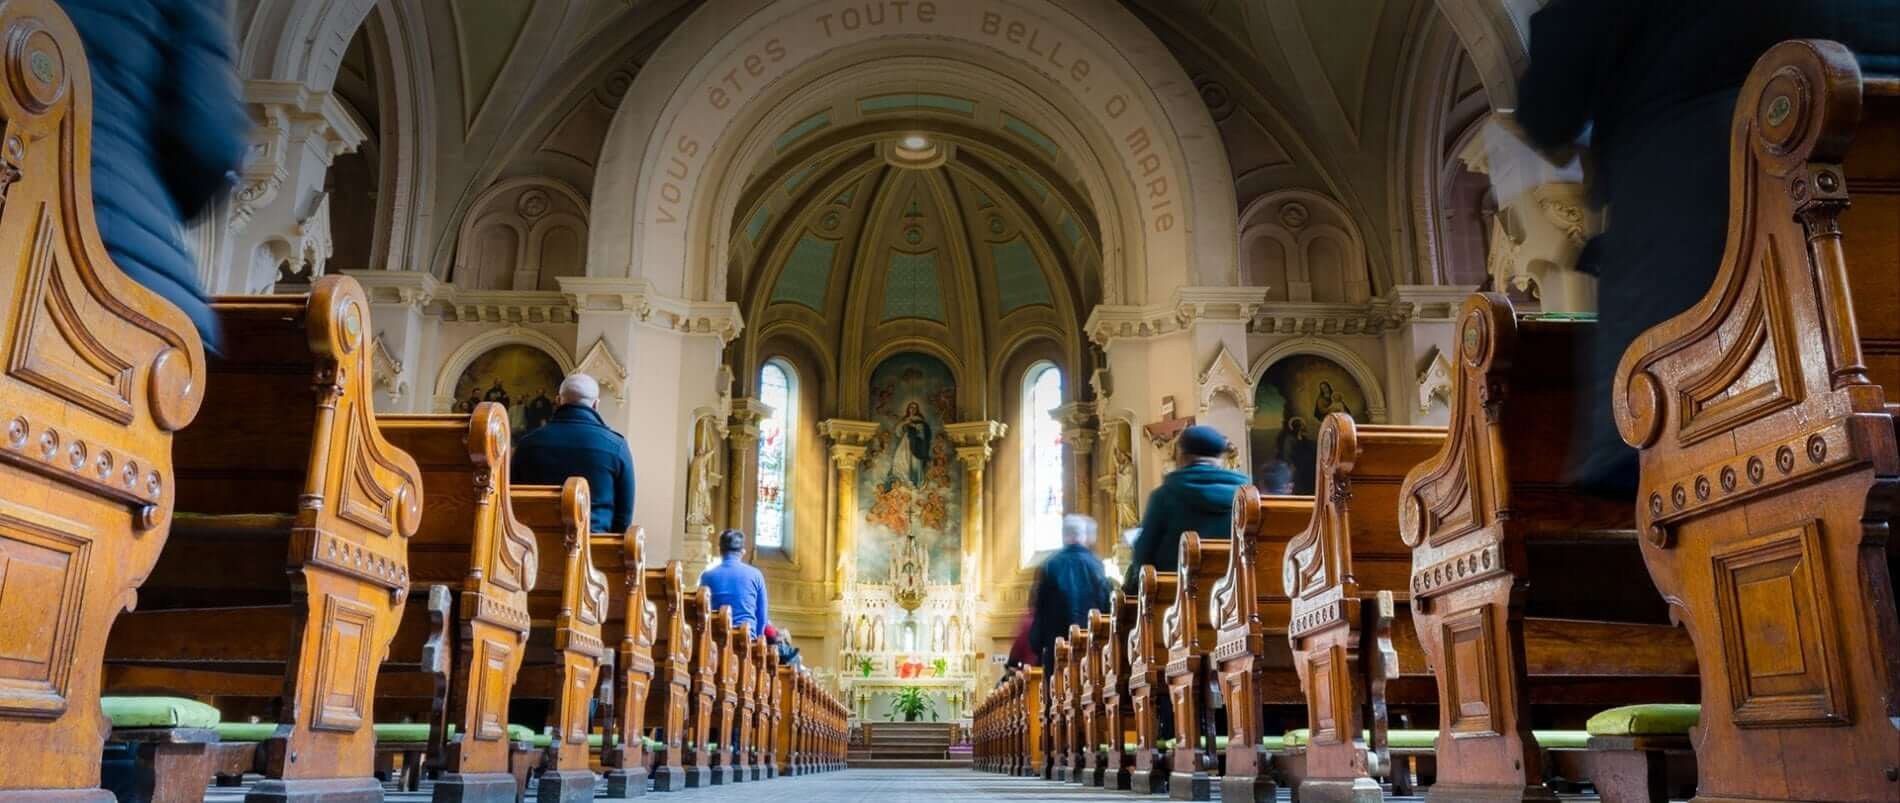 Church Management Software - Registration Software for Churches - Cathedral